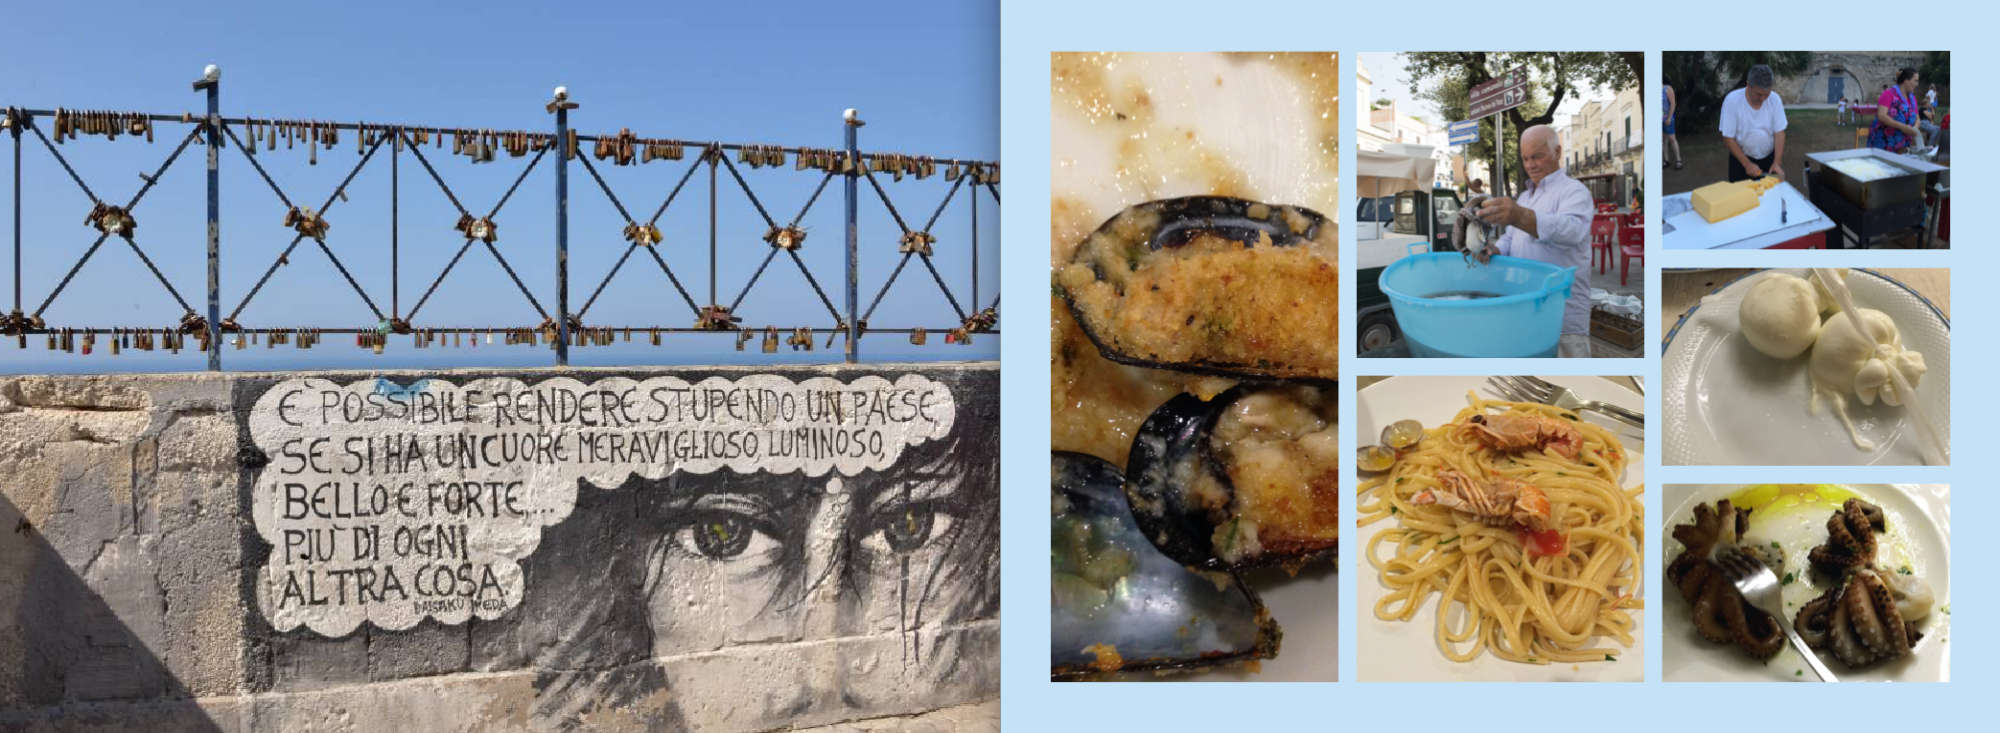 Puglia Album - Page 72: A porta fortuna script – Page 73: An assortment of delicious foods from Puglia